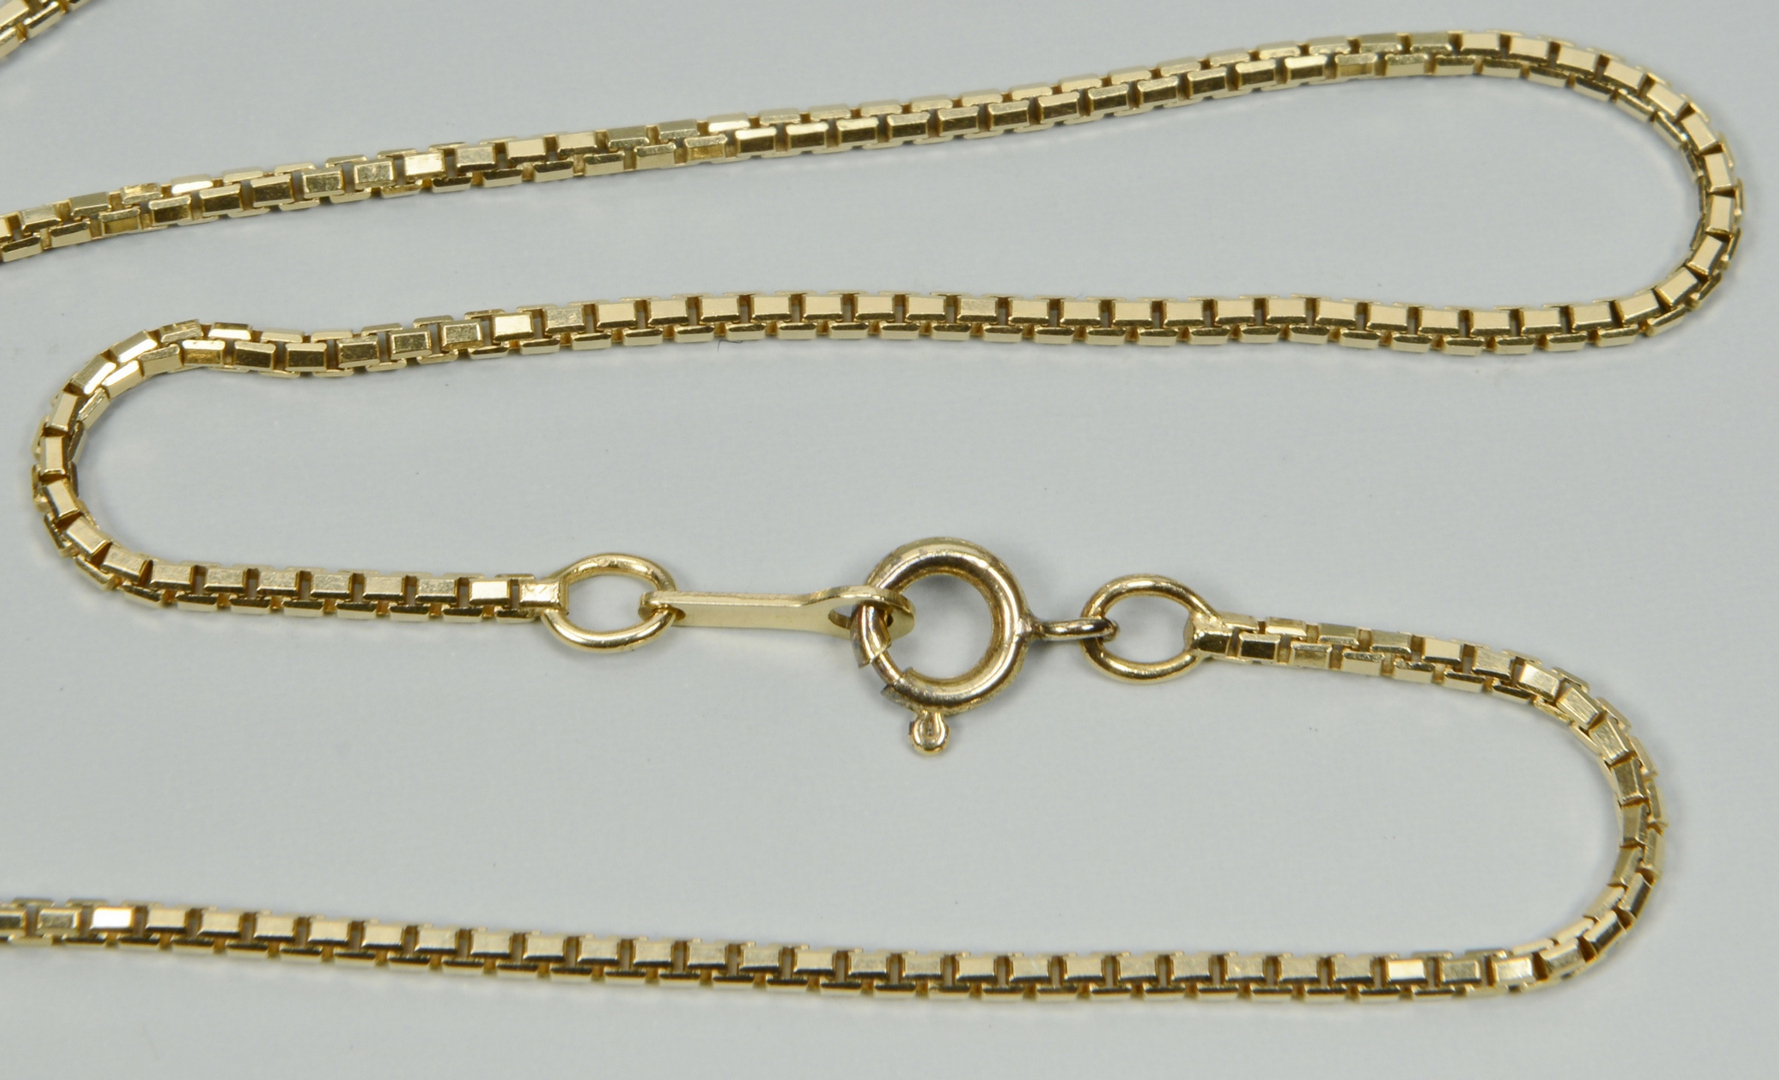 Lot 3088214: Two 14k yellow gold chain necklaces